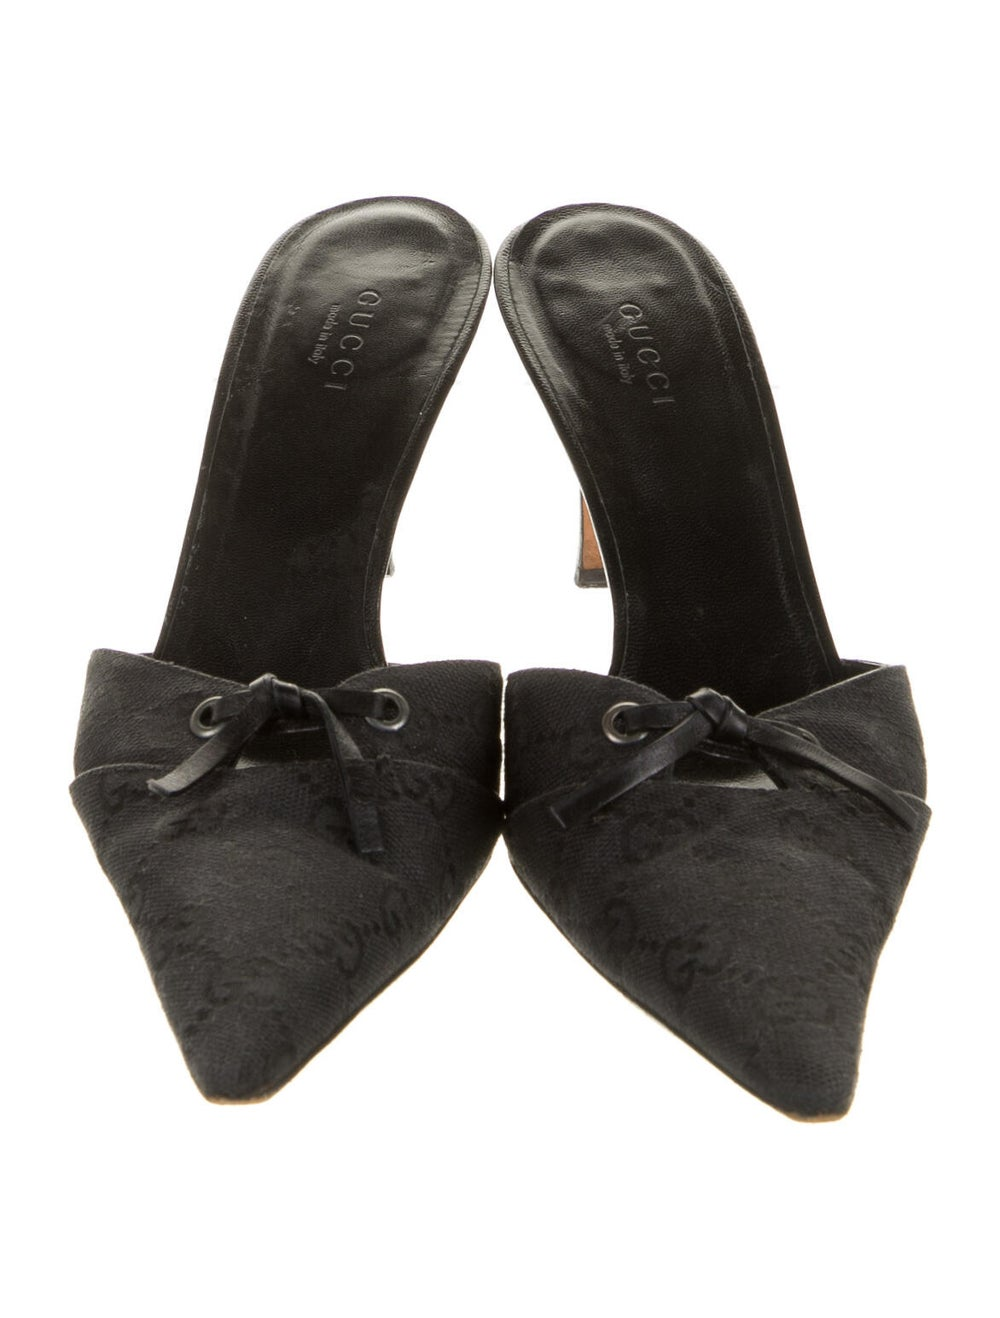 Gucci GG Canvas Keyhole Accent Mules Black - image 3